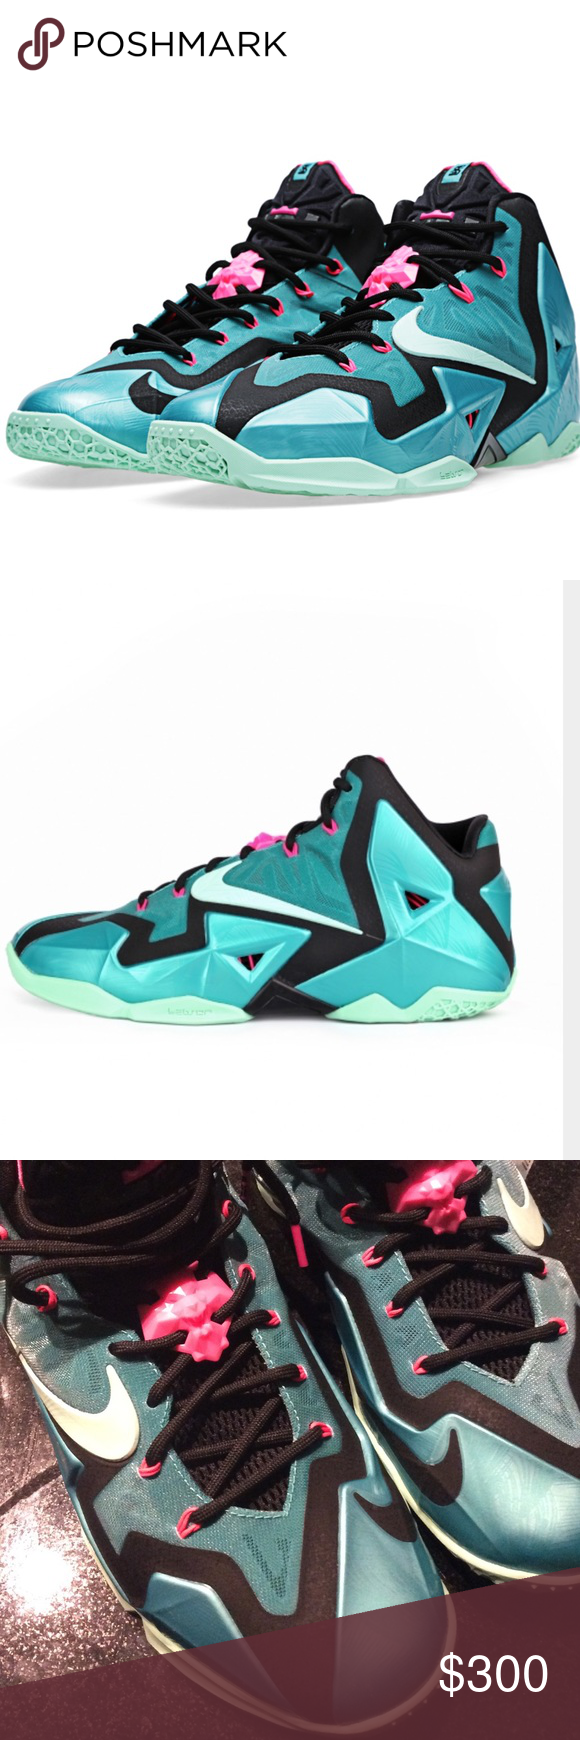 3e3fd93e7632d Deleting Today! Make an offer! 😮Nike Lebron 11 SB Teal